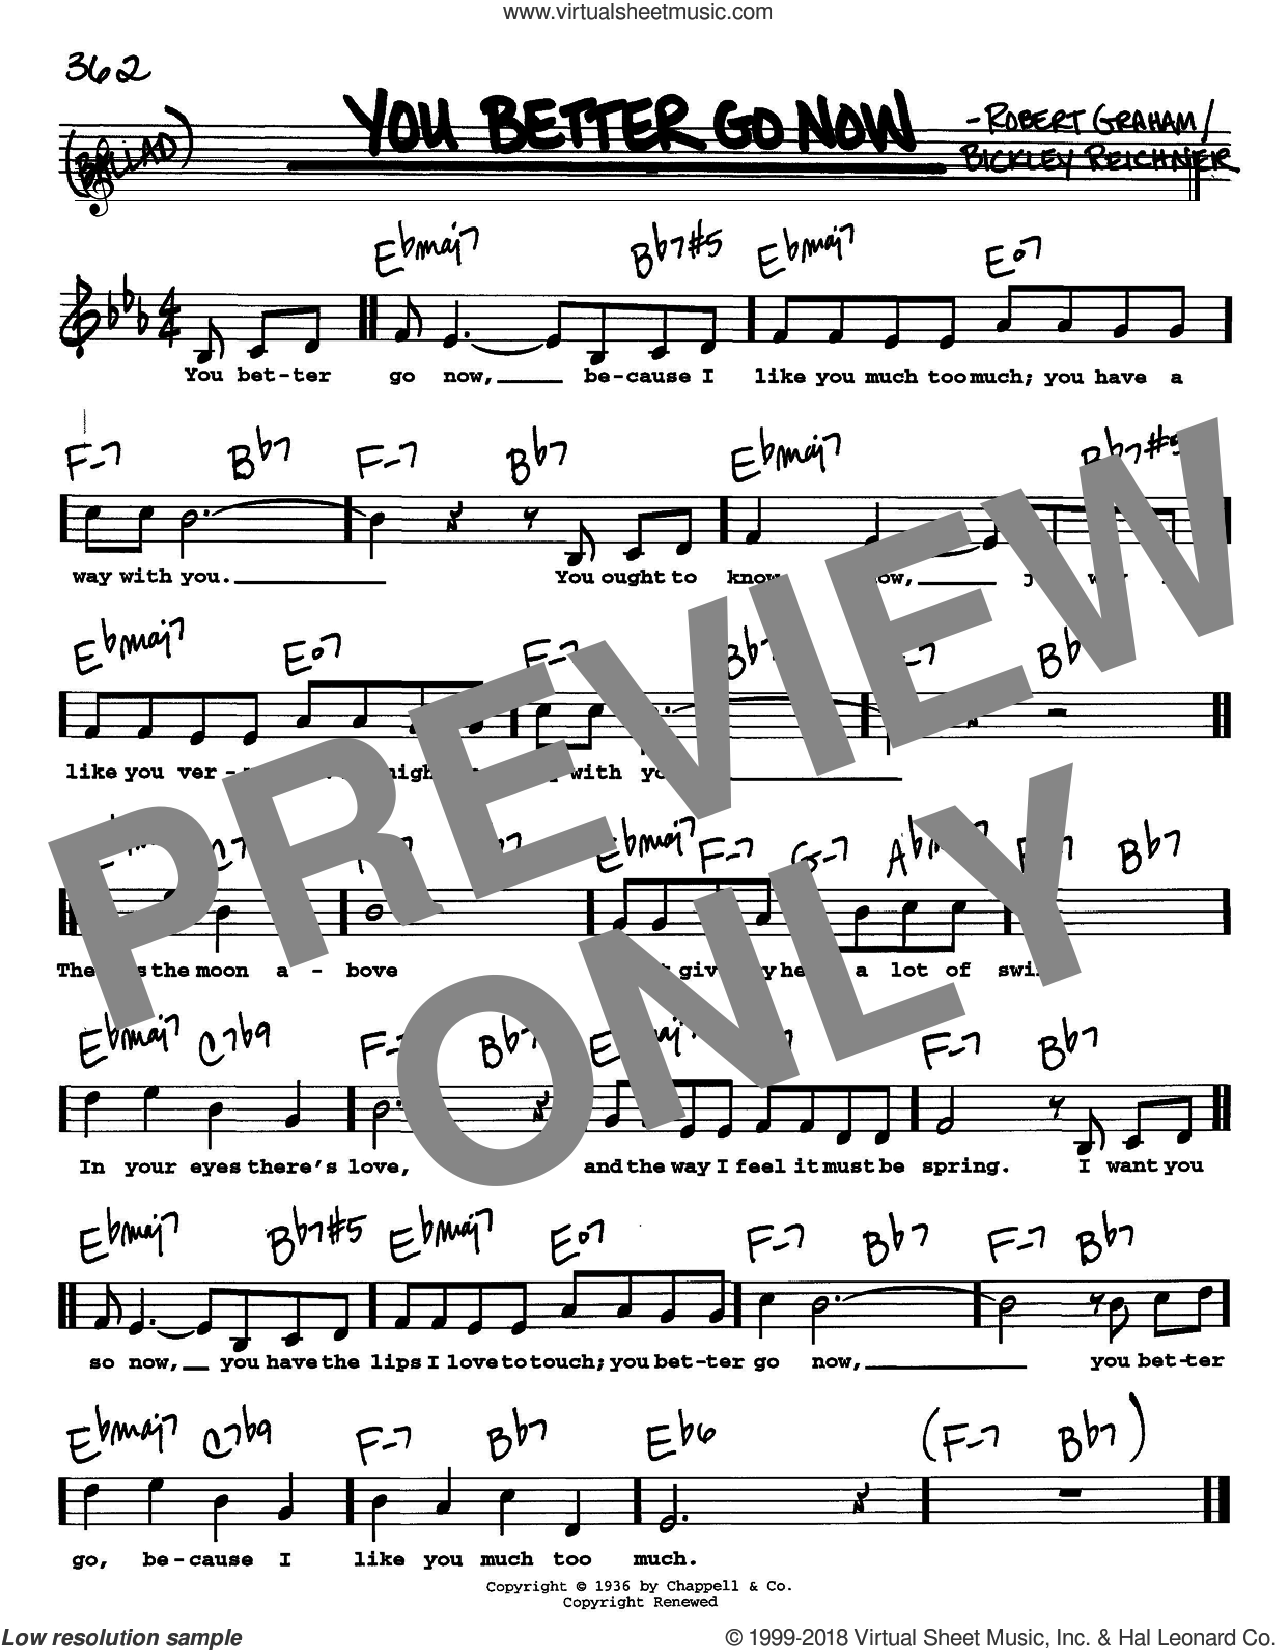 You Better Go Now sheet music for voice and other instruments (Vocal Volume 2) by Robert Graham. Score Image Preview.